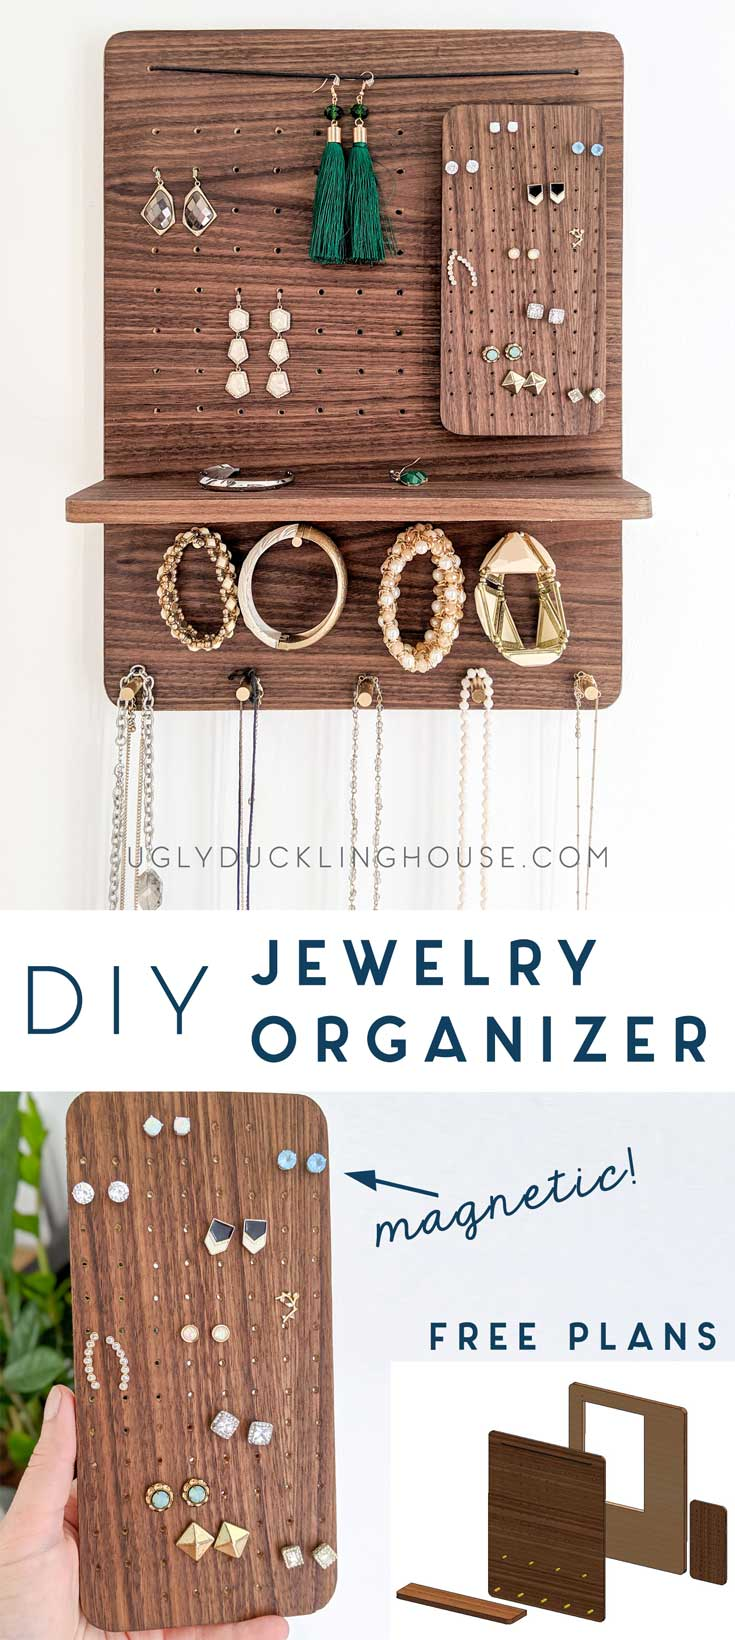 diy jewelry organizer with free plans by Ugly Duckling House